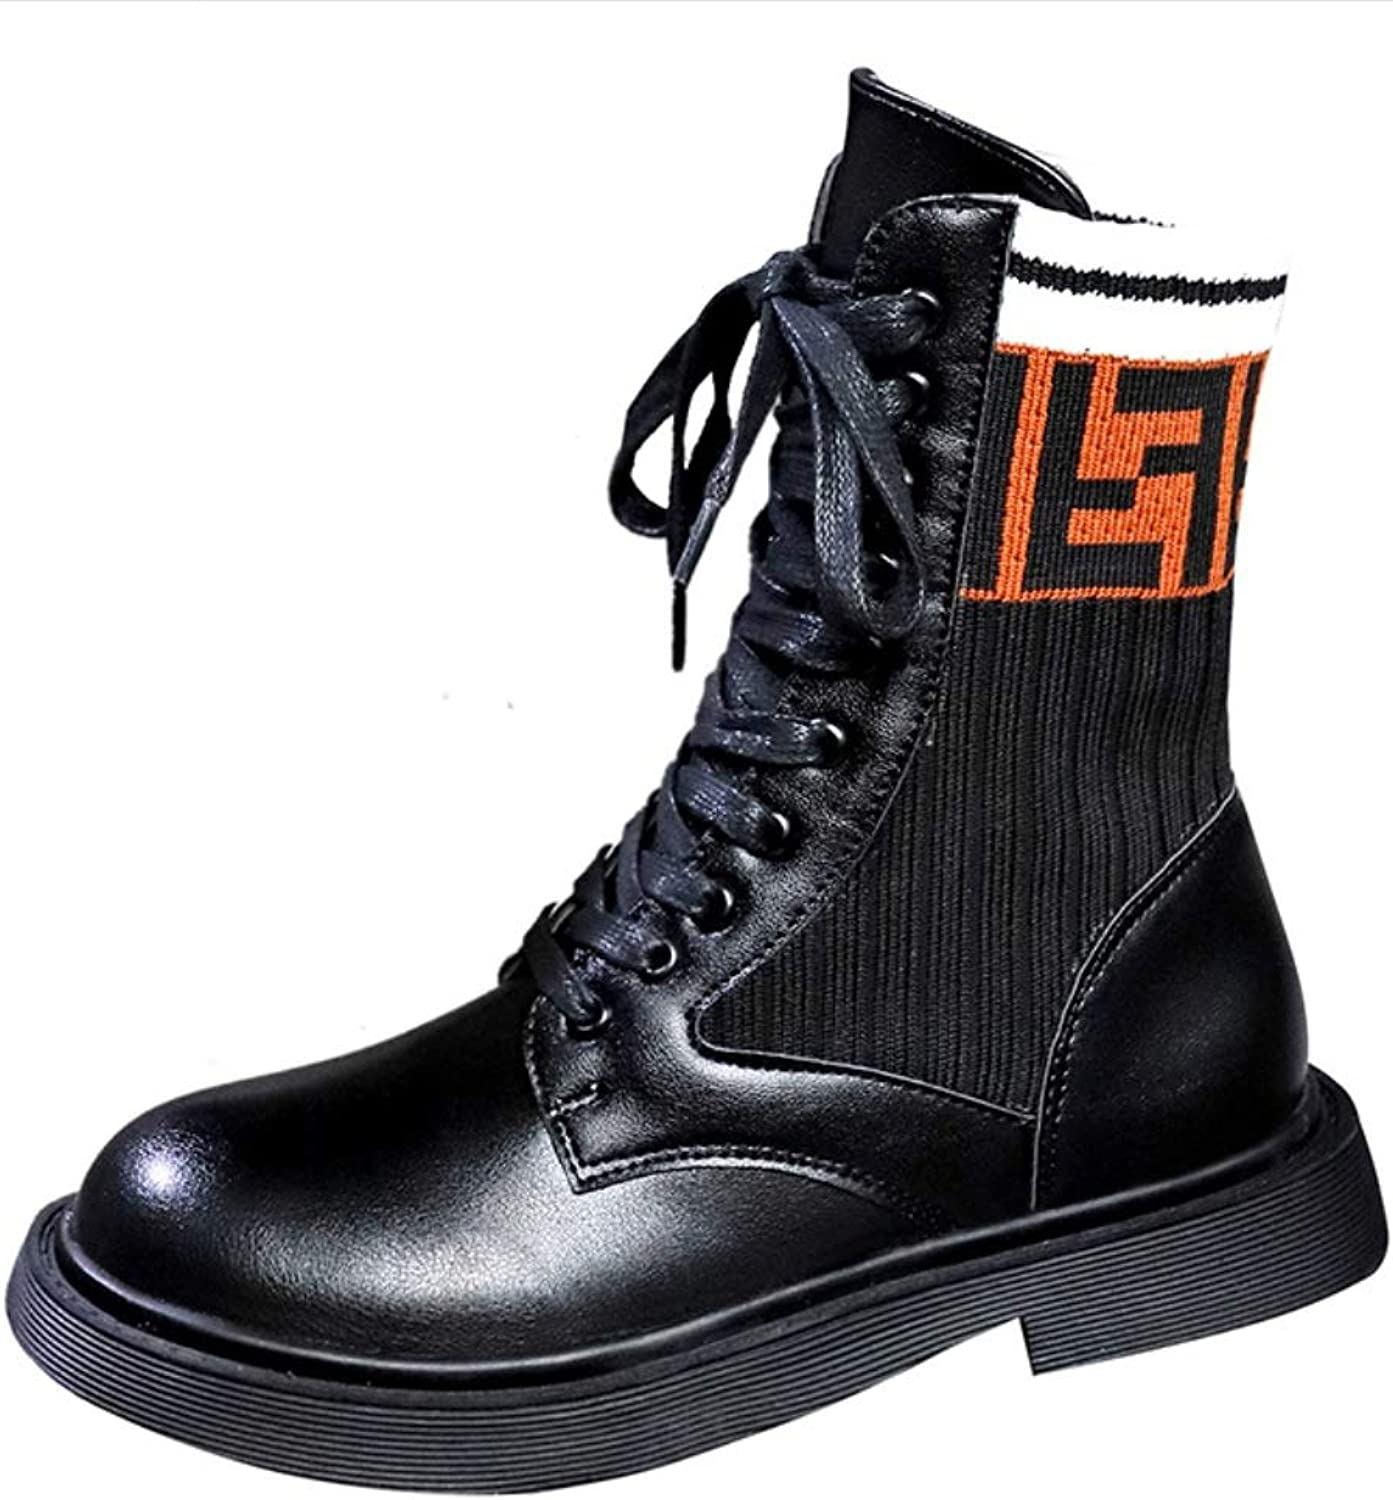 Women's Boots Ankle Boots Ladies Short Boots Fashion Leather Outdoor Tooling Boots Martin Boots Ladies Flat Casual Motorcycle Motorcycle Boots